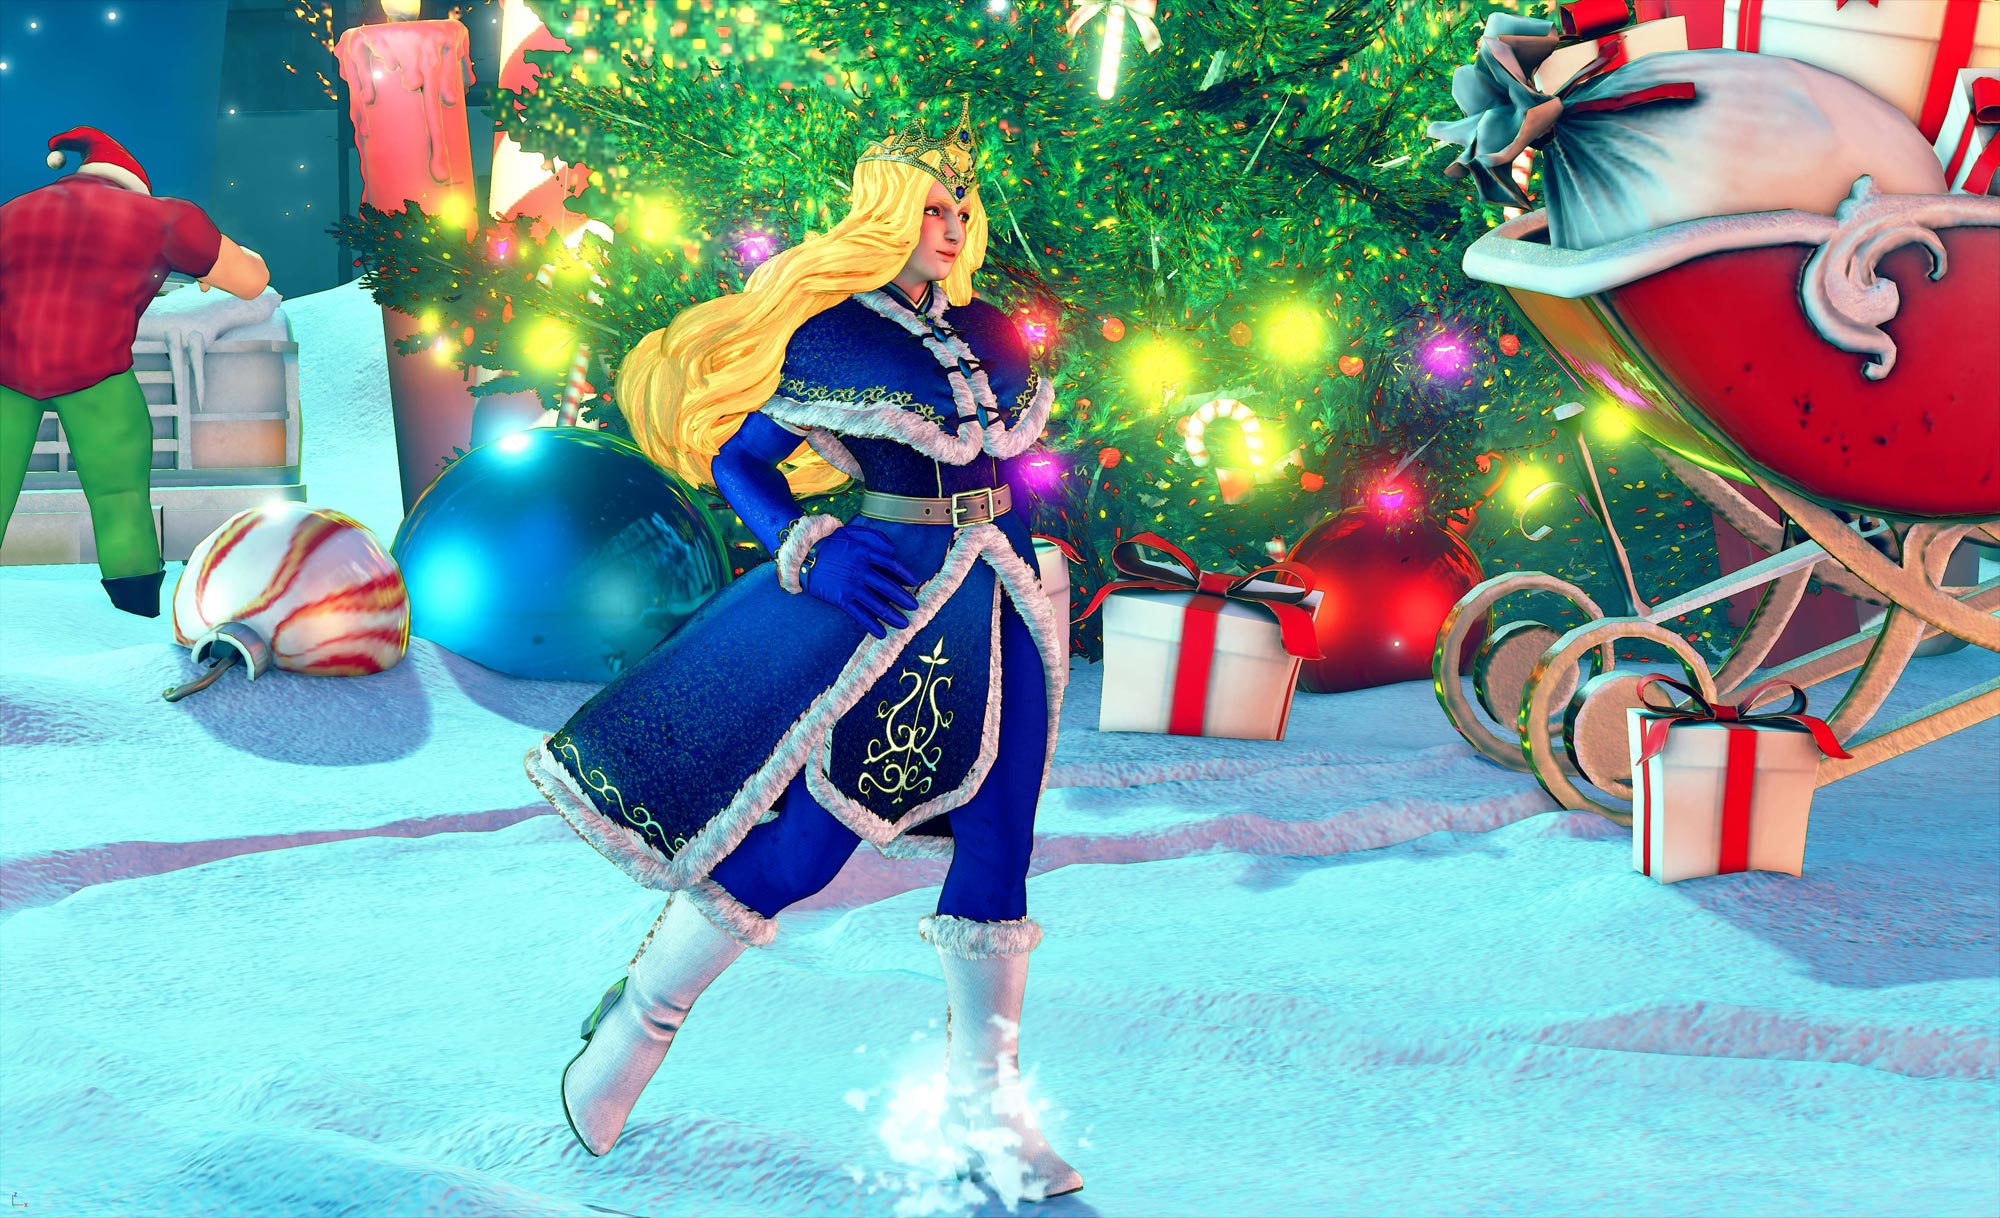 New Street Fighter 5 costumes 3 out of 10 image gallery